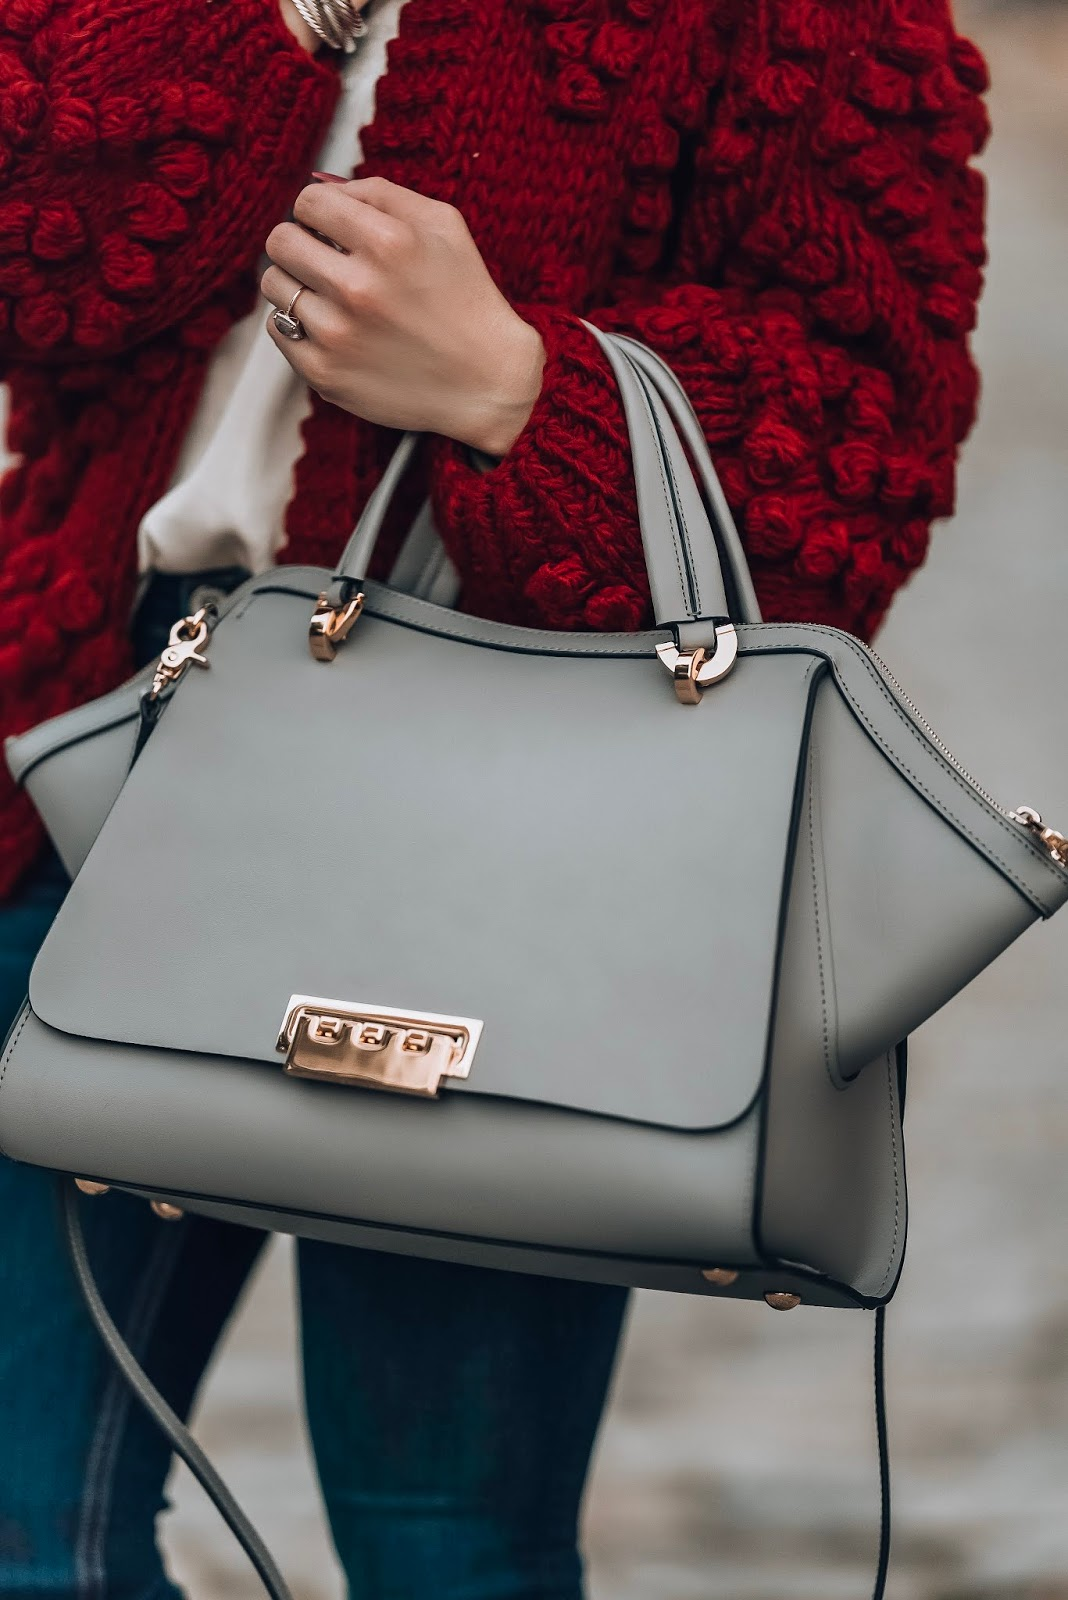 ZAC Zac Posen Bag - Something Delightful Blog